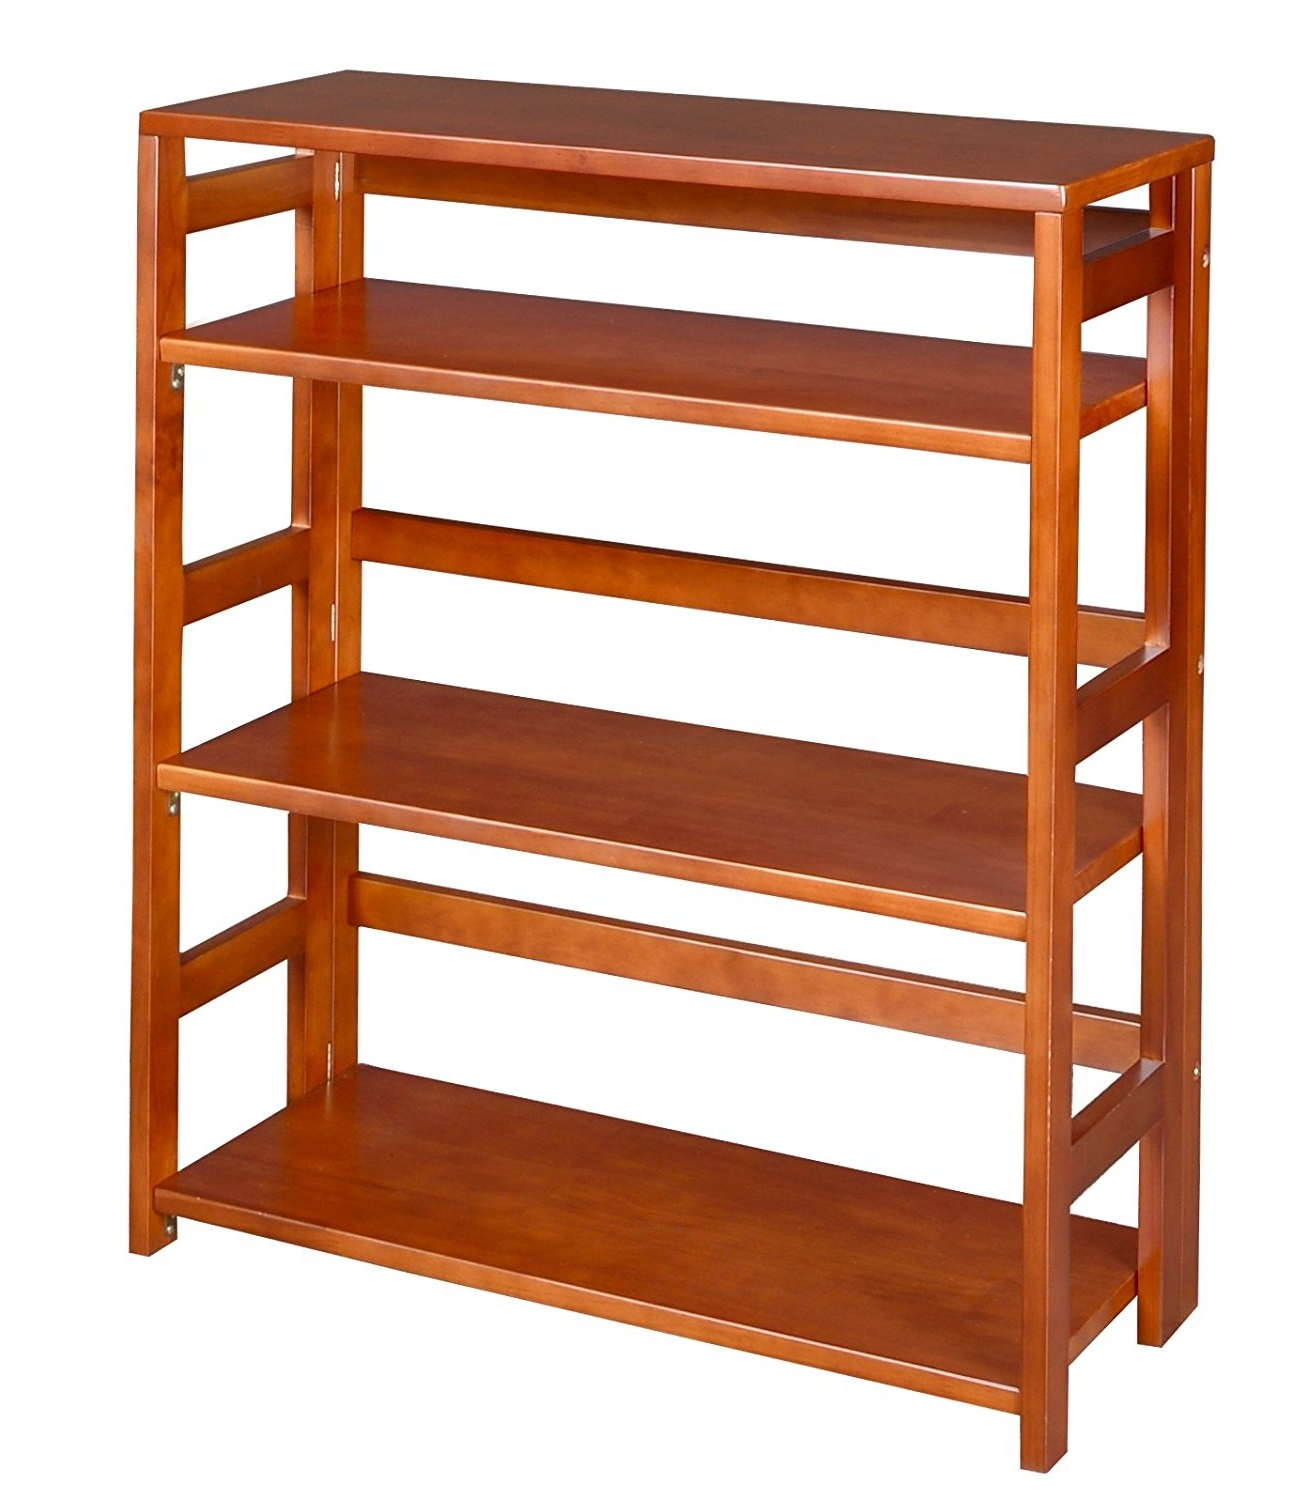 Folding Bookcases For Well Known Amazon: Regency Flip Flop 34 Inch High Folding Bookcase (View 2 of 15)